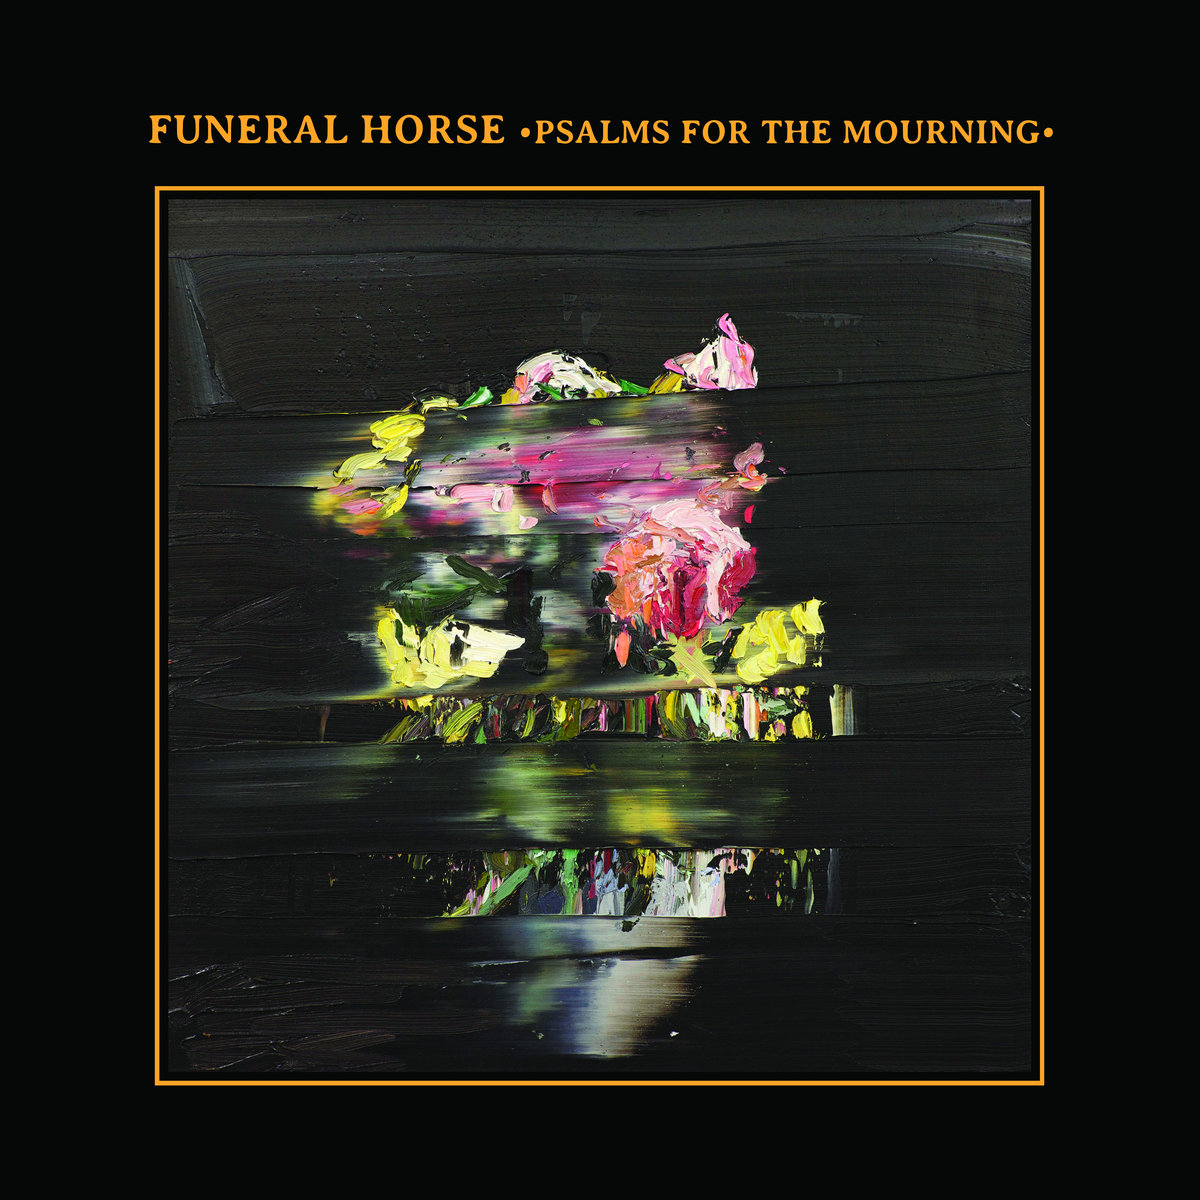 funeral horse psalms for the mourning